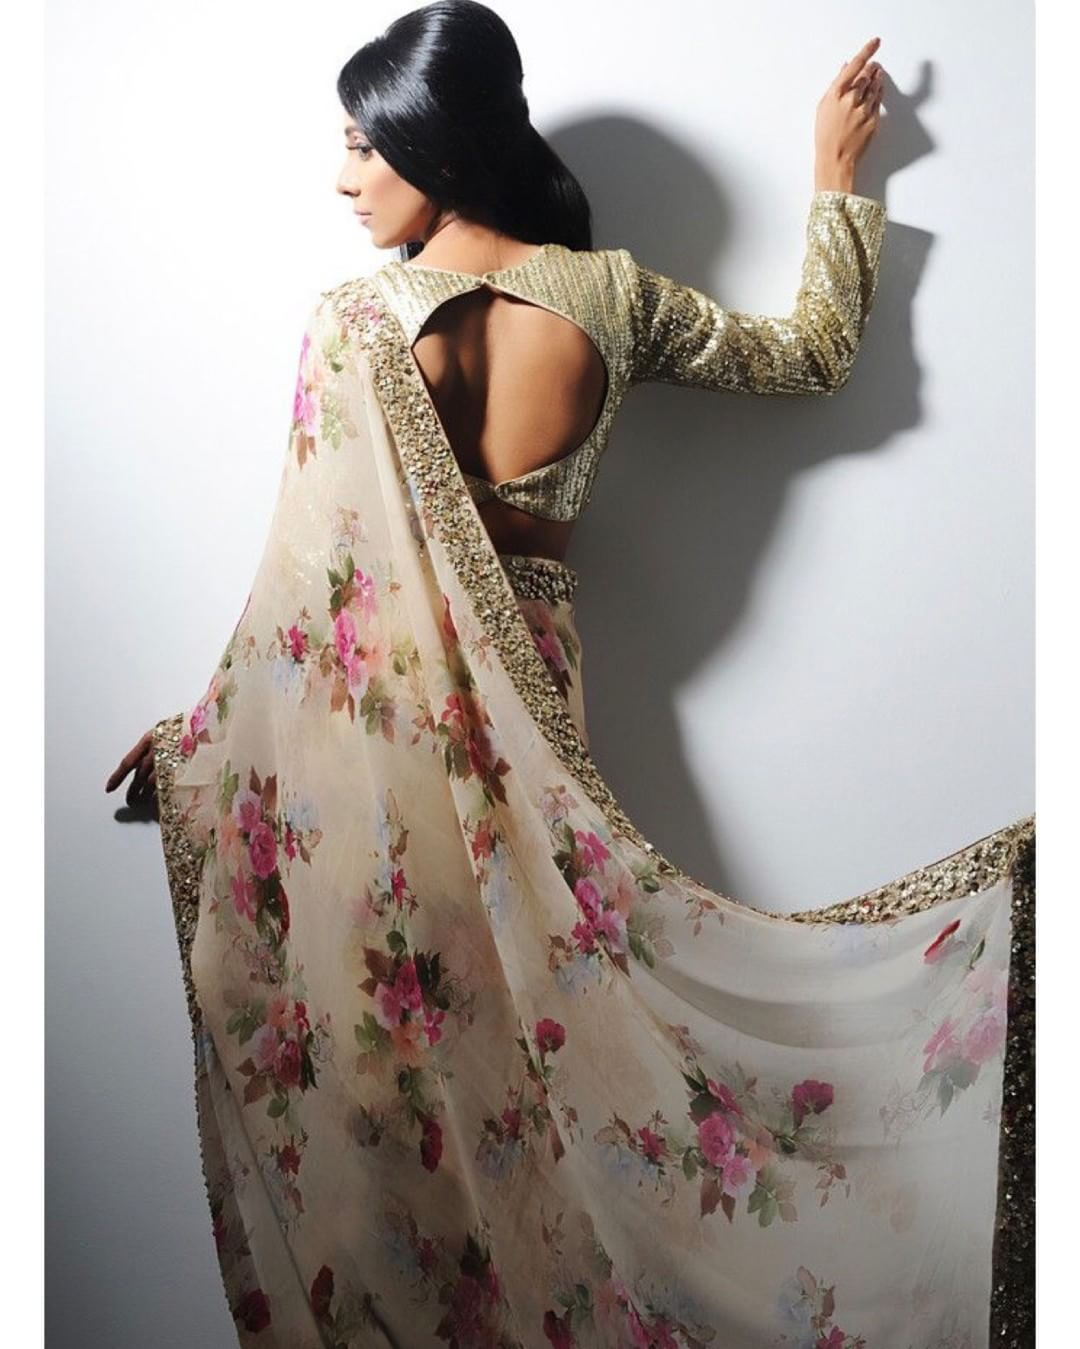 a7cdcd27c526b Georgette floral Saree with sequin border and gold sequin blouse To purchase  mail us at houseof2 live.com or Whatsapp us on +919833411702…